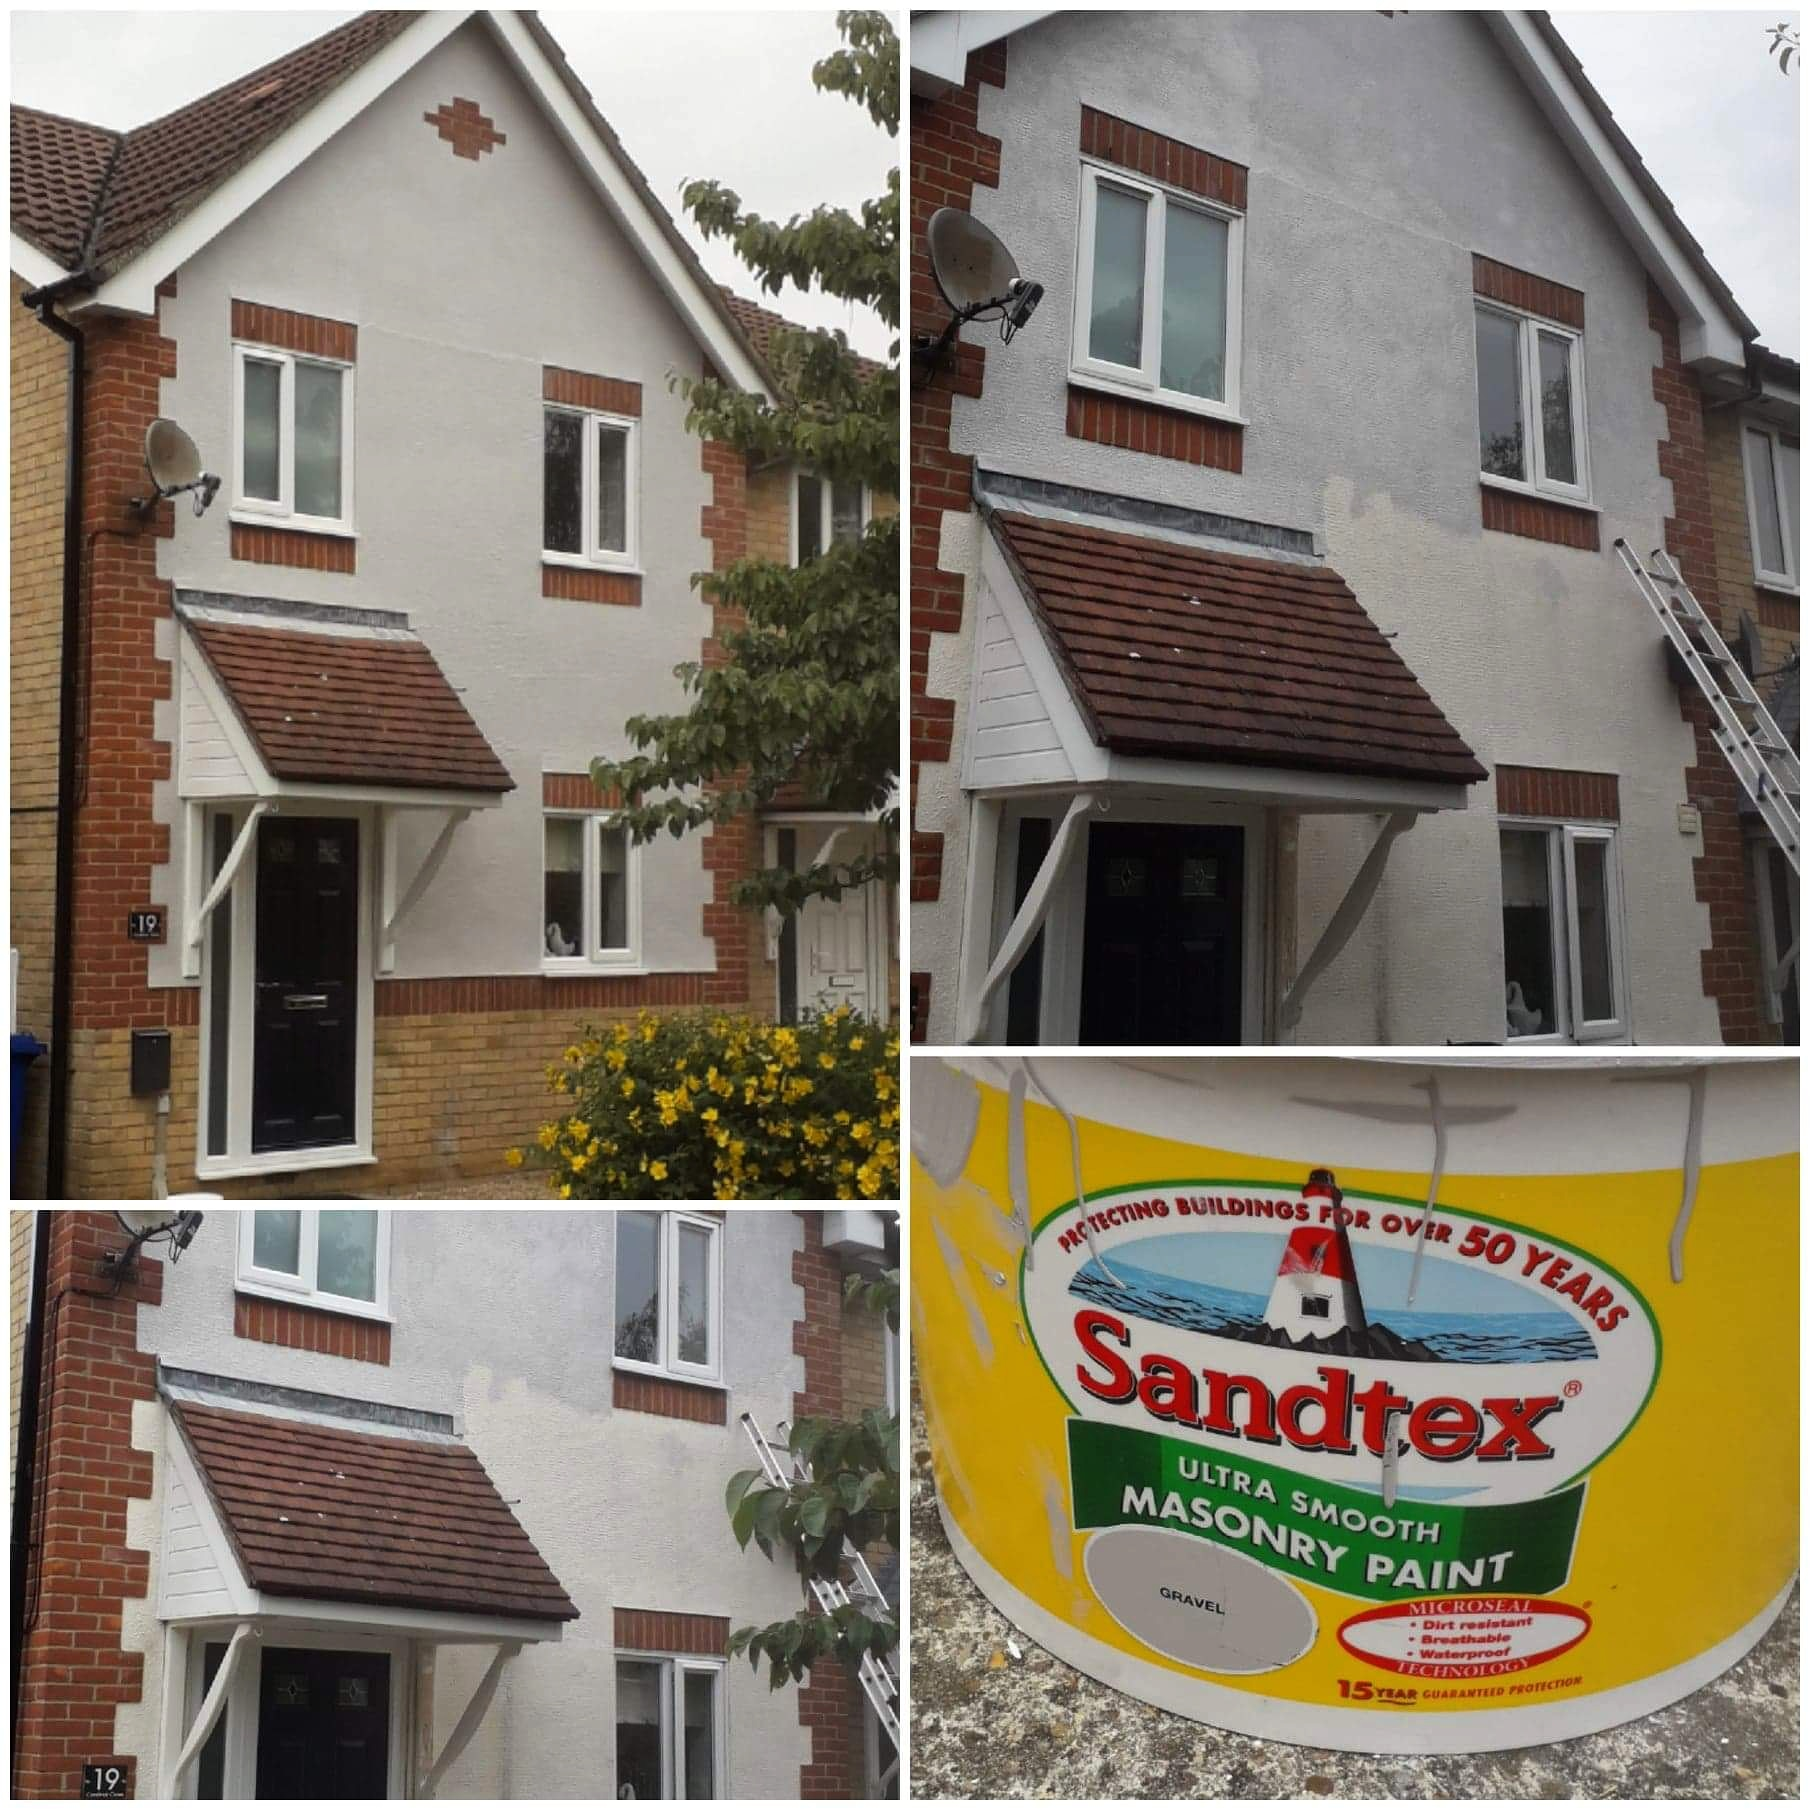 Exterior painted in #Sandtex masonry